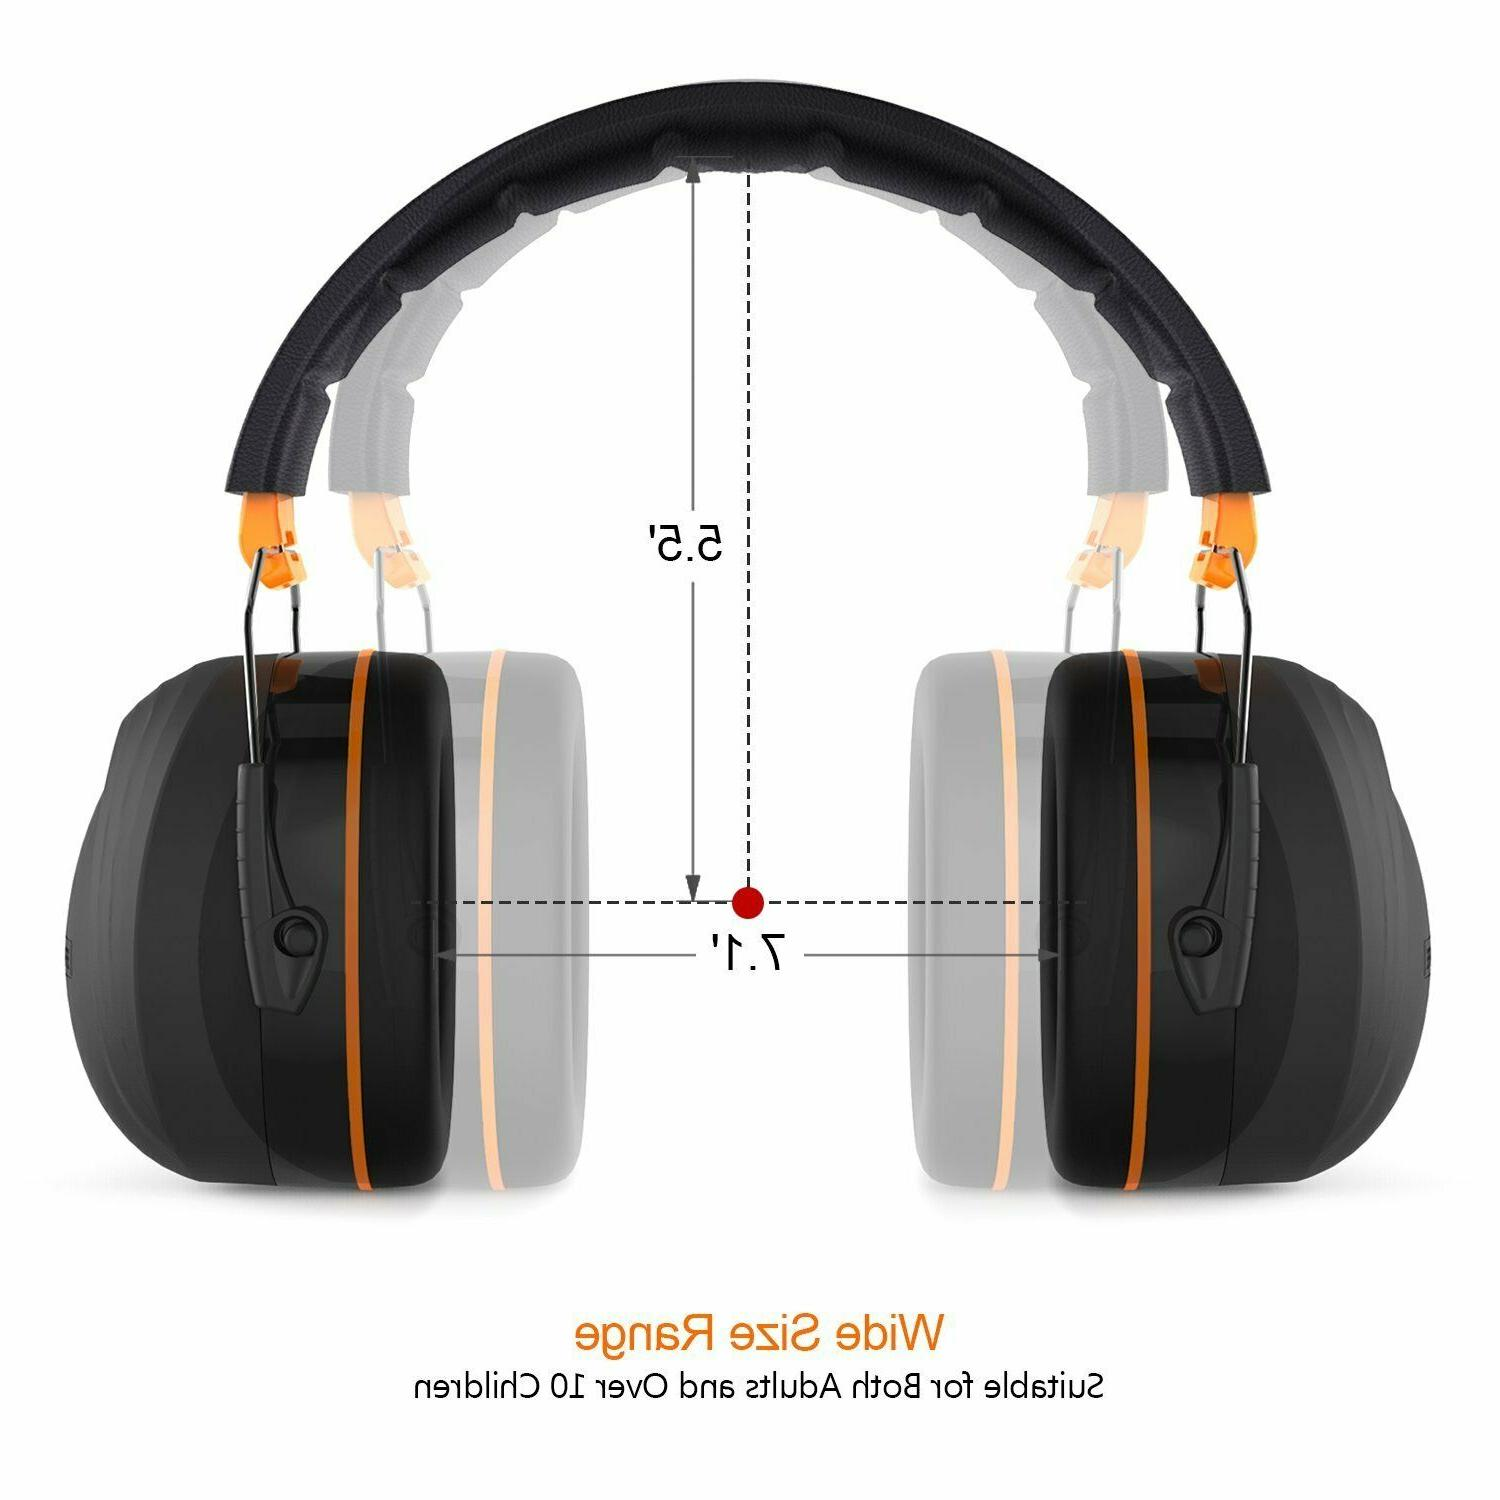 Noise Ear Tacklife 28dB Shooters Hearing Ear Muf